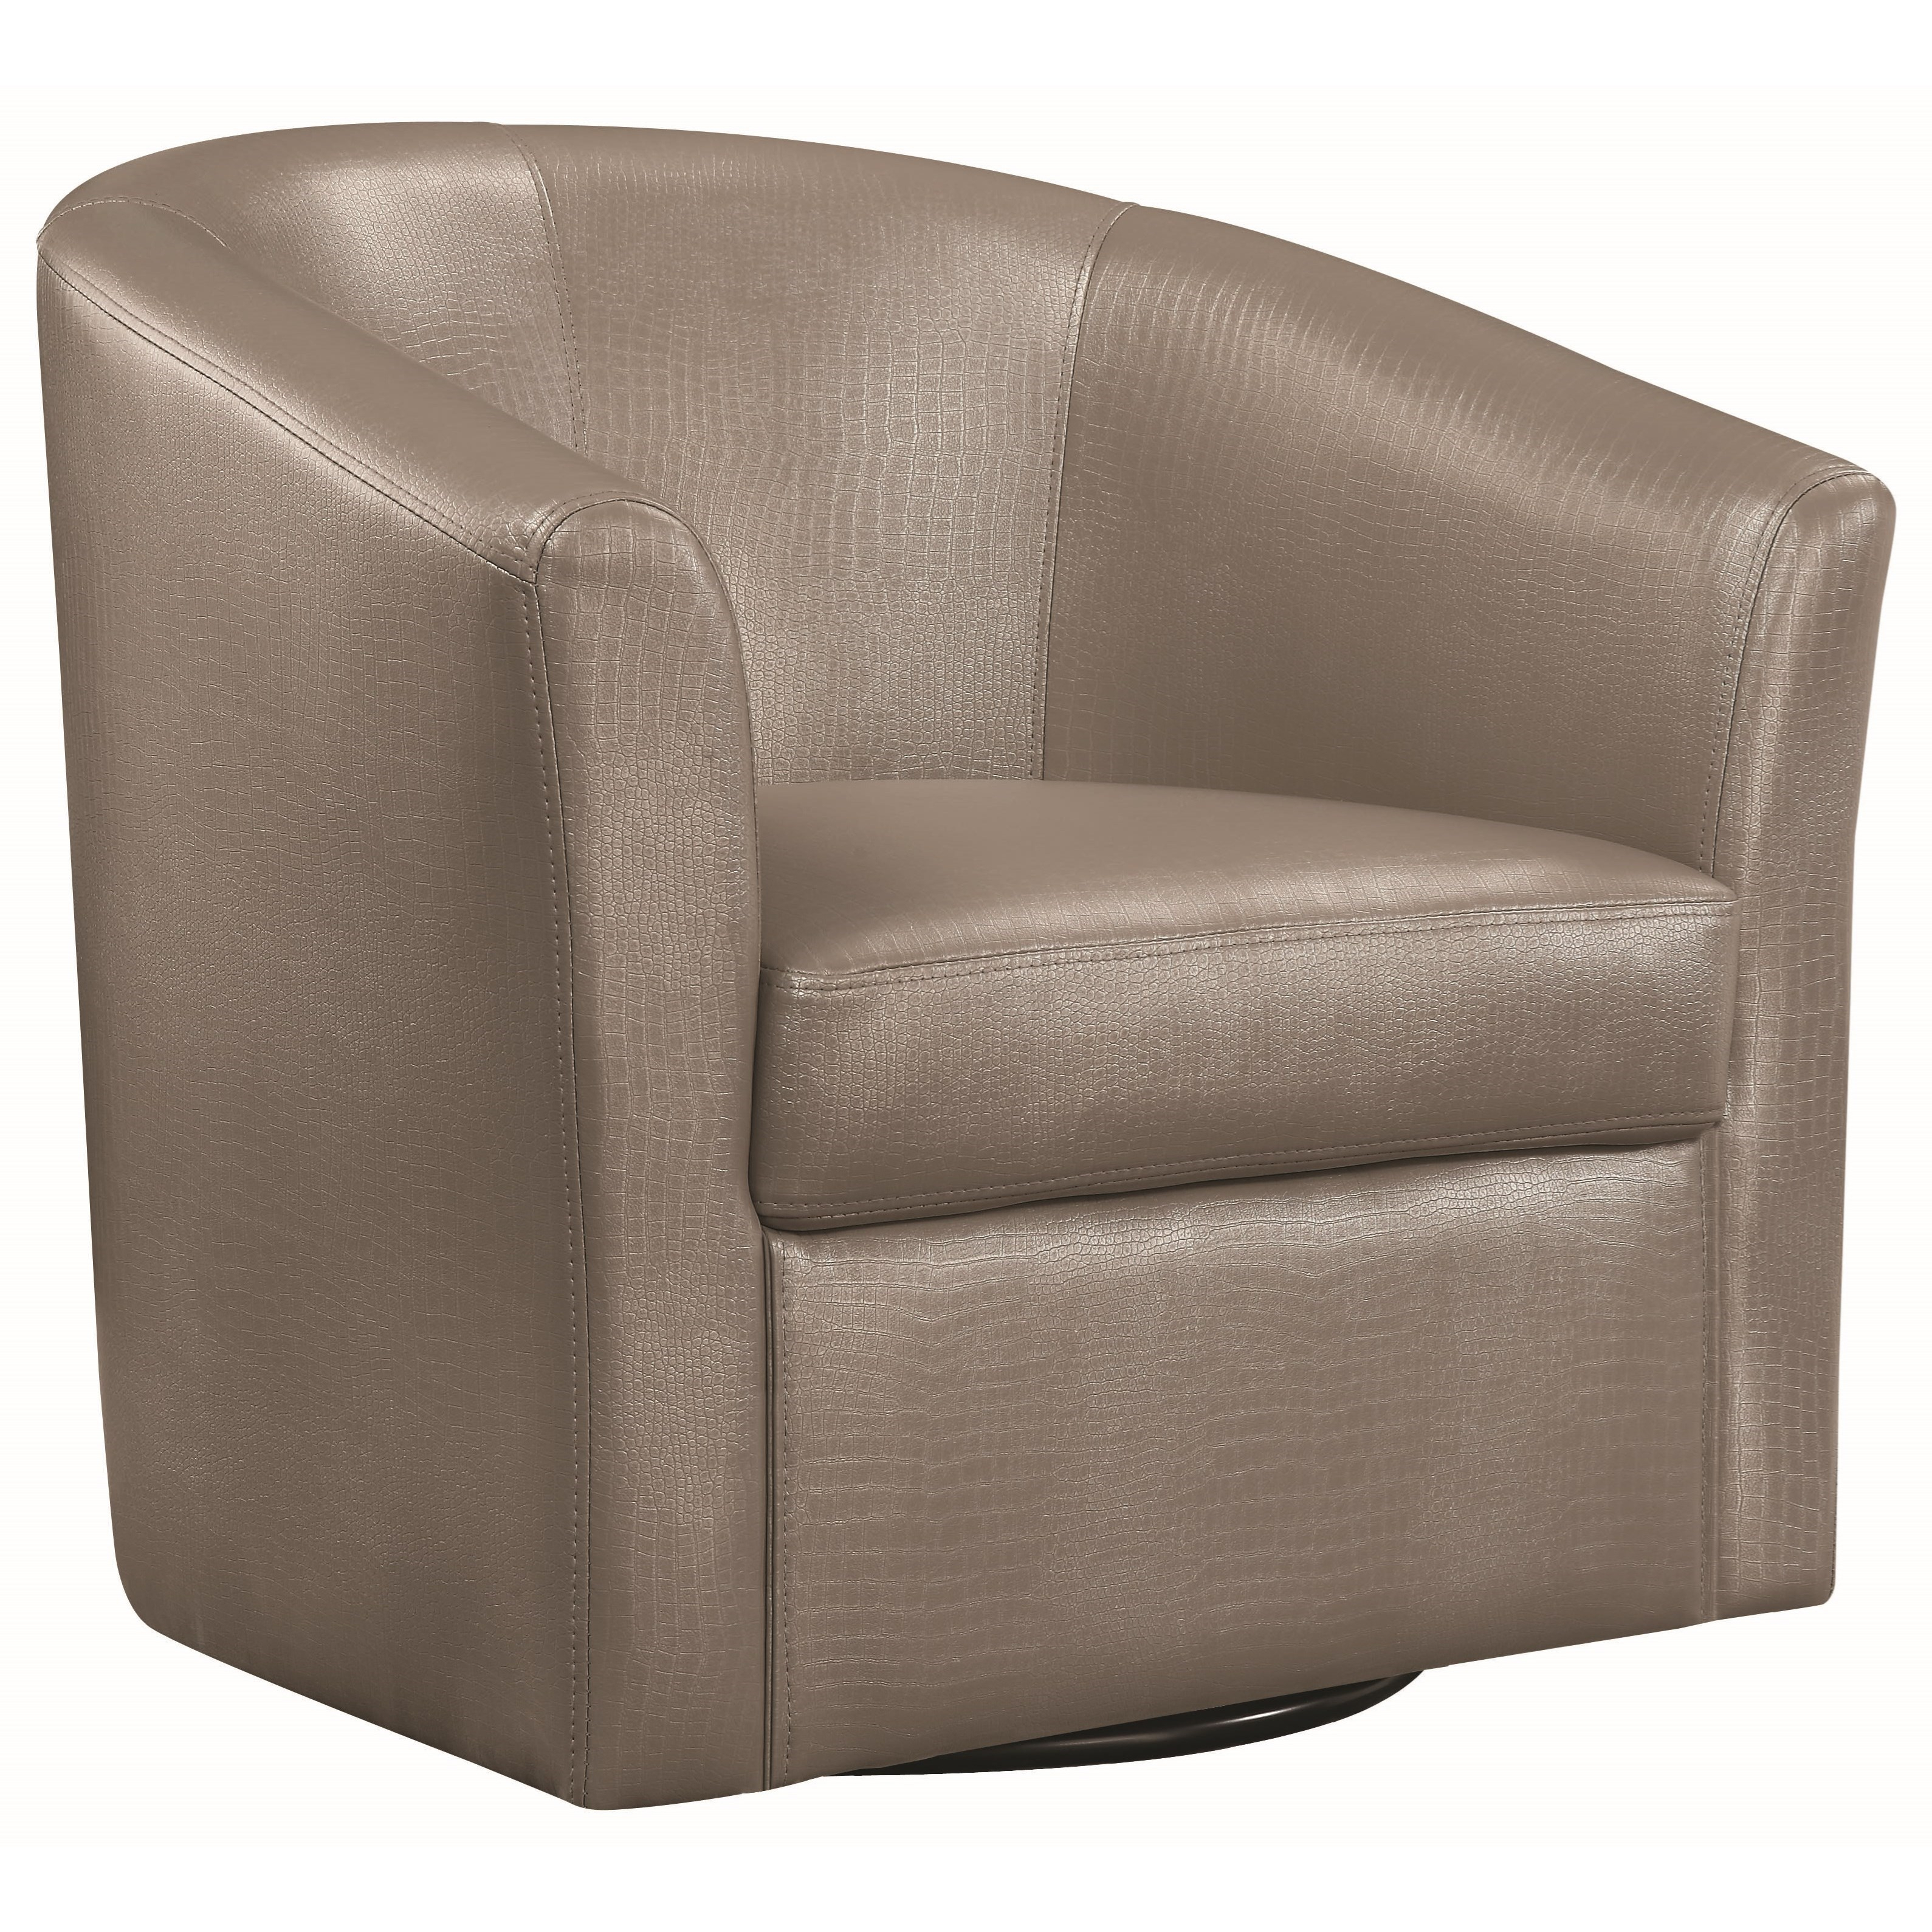 Coaster Accent Seating Contemporary Styled Accent Swivel Chair Throughout Umber Grey Swivel Accent Chairs (View 9 of 25)